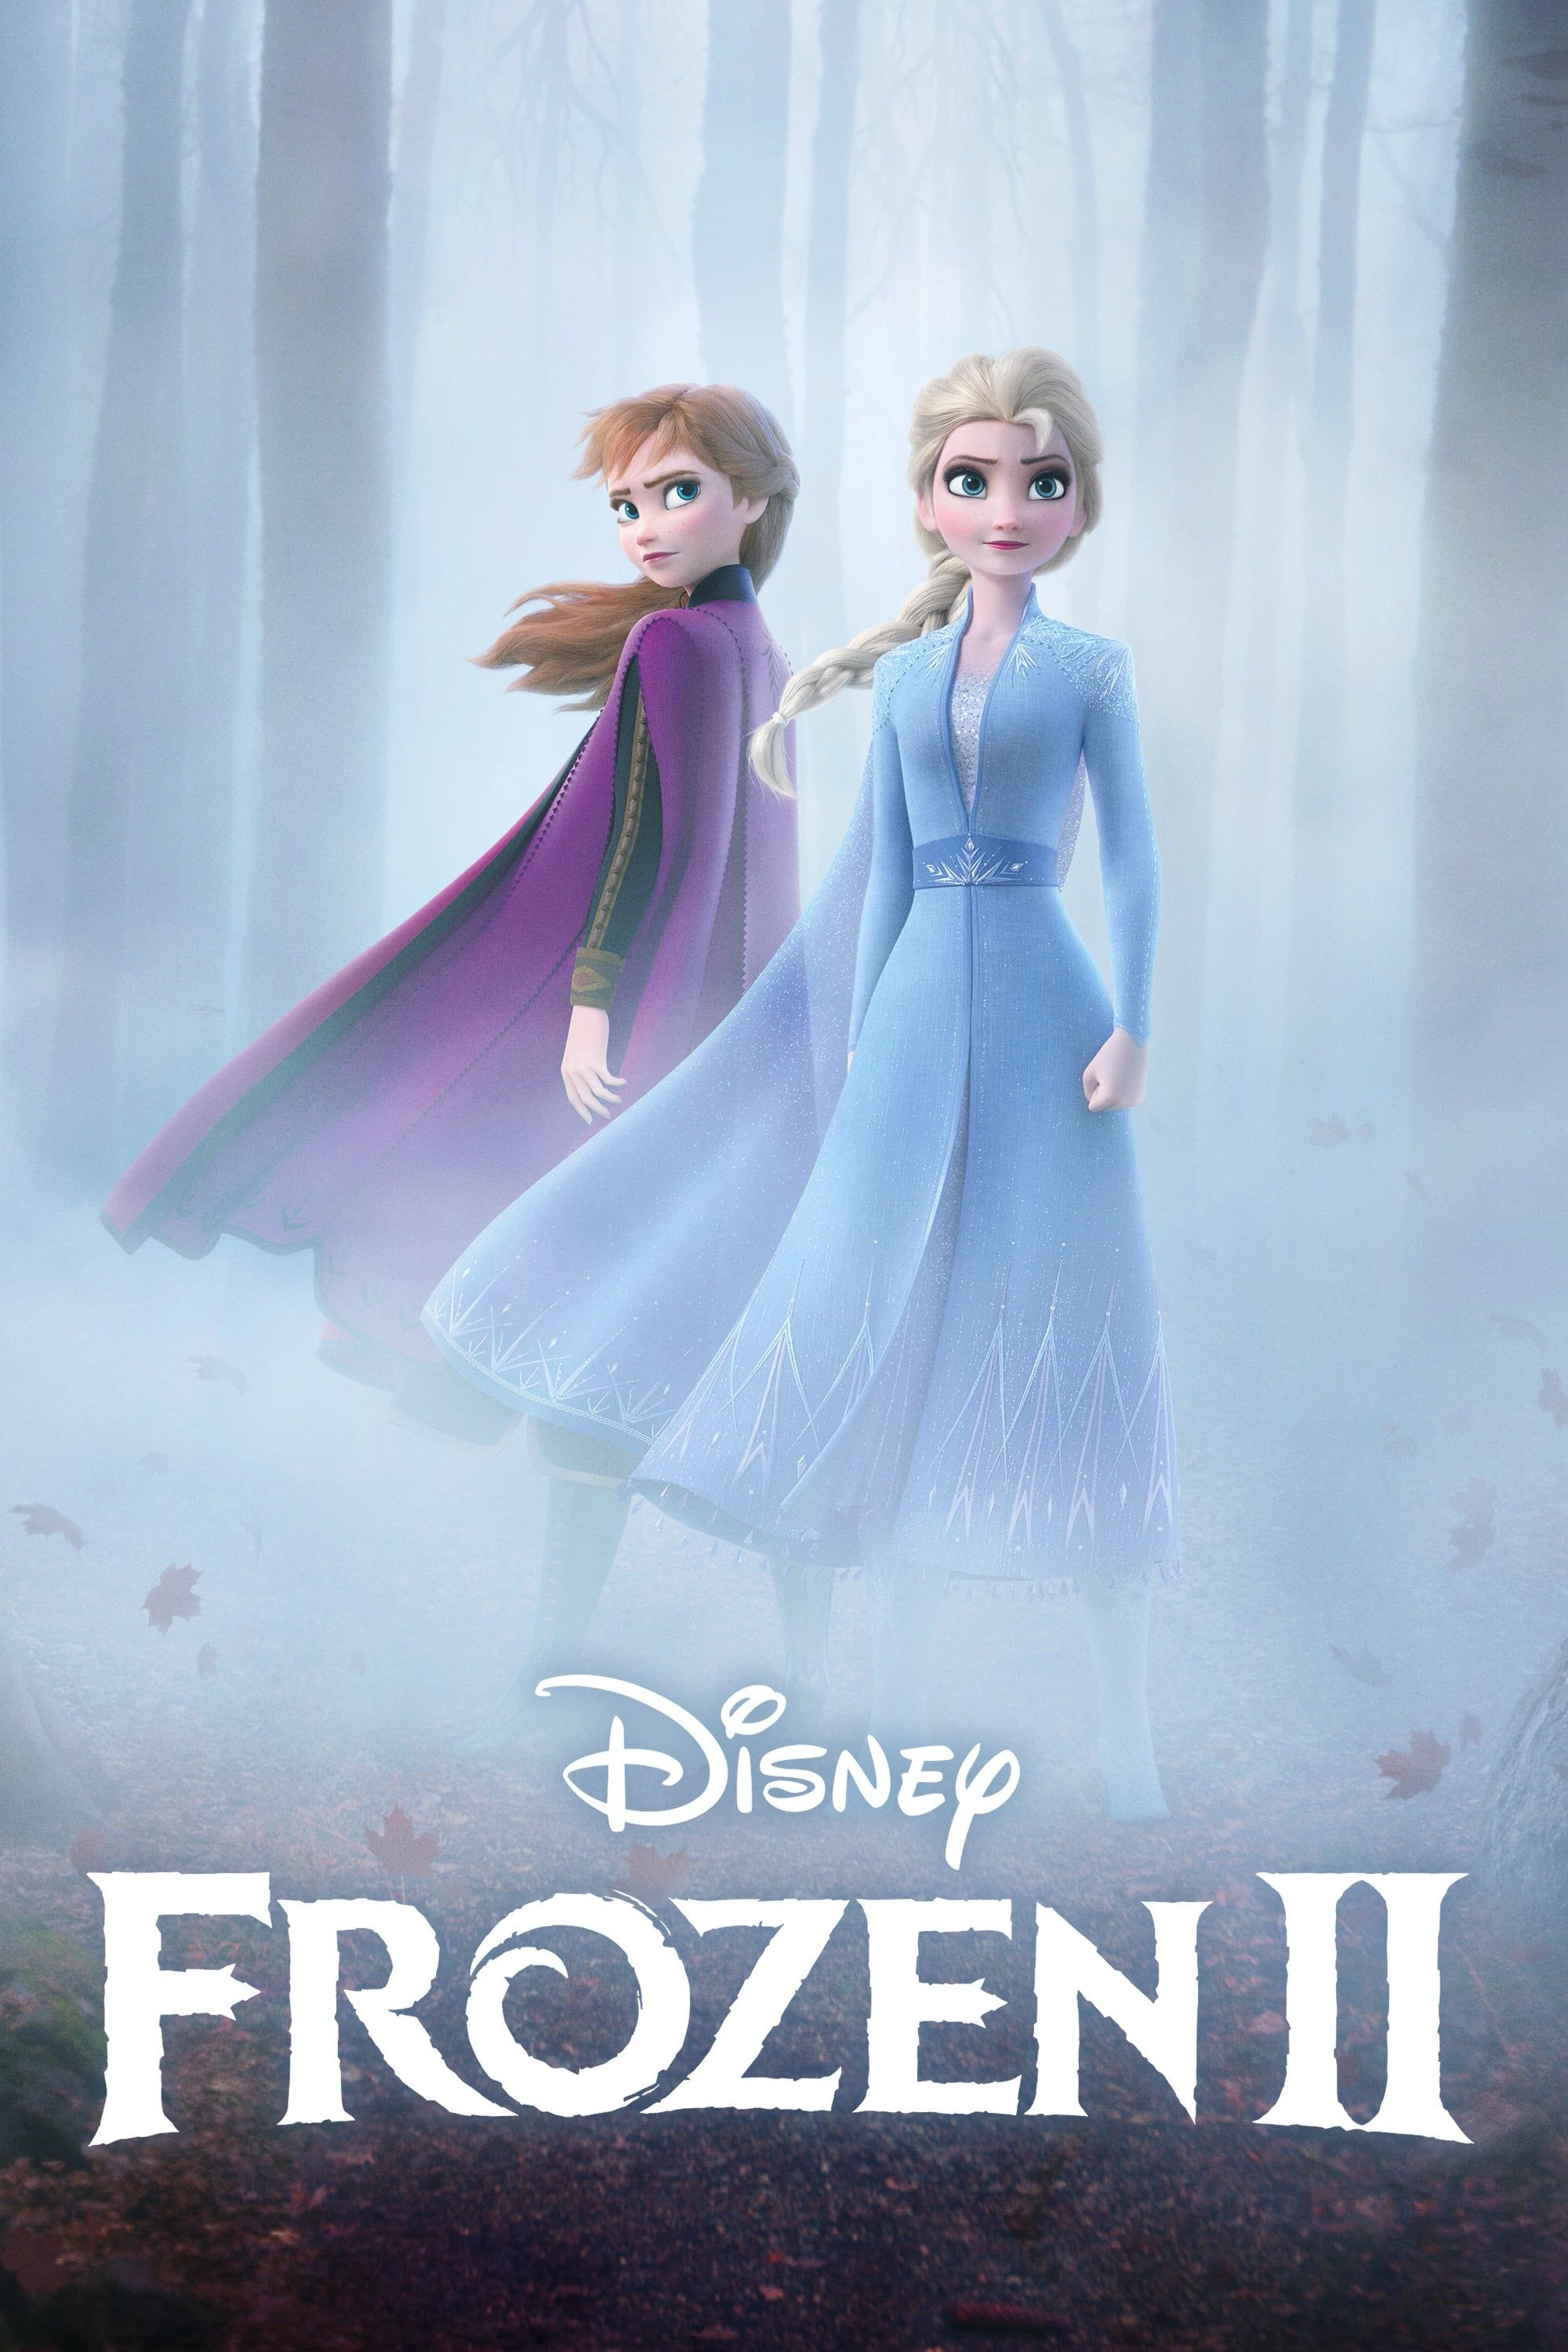 FULLWATCH! Frozen II 2019 FULL. ONLINE. MOVIE. HD Free